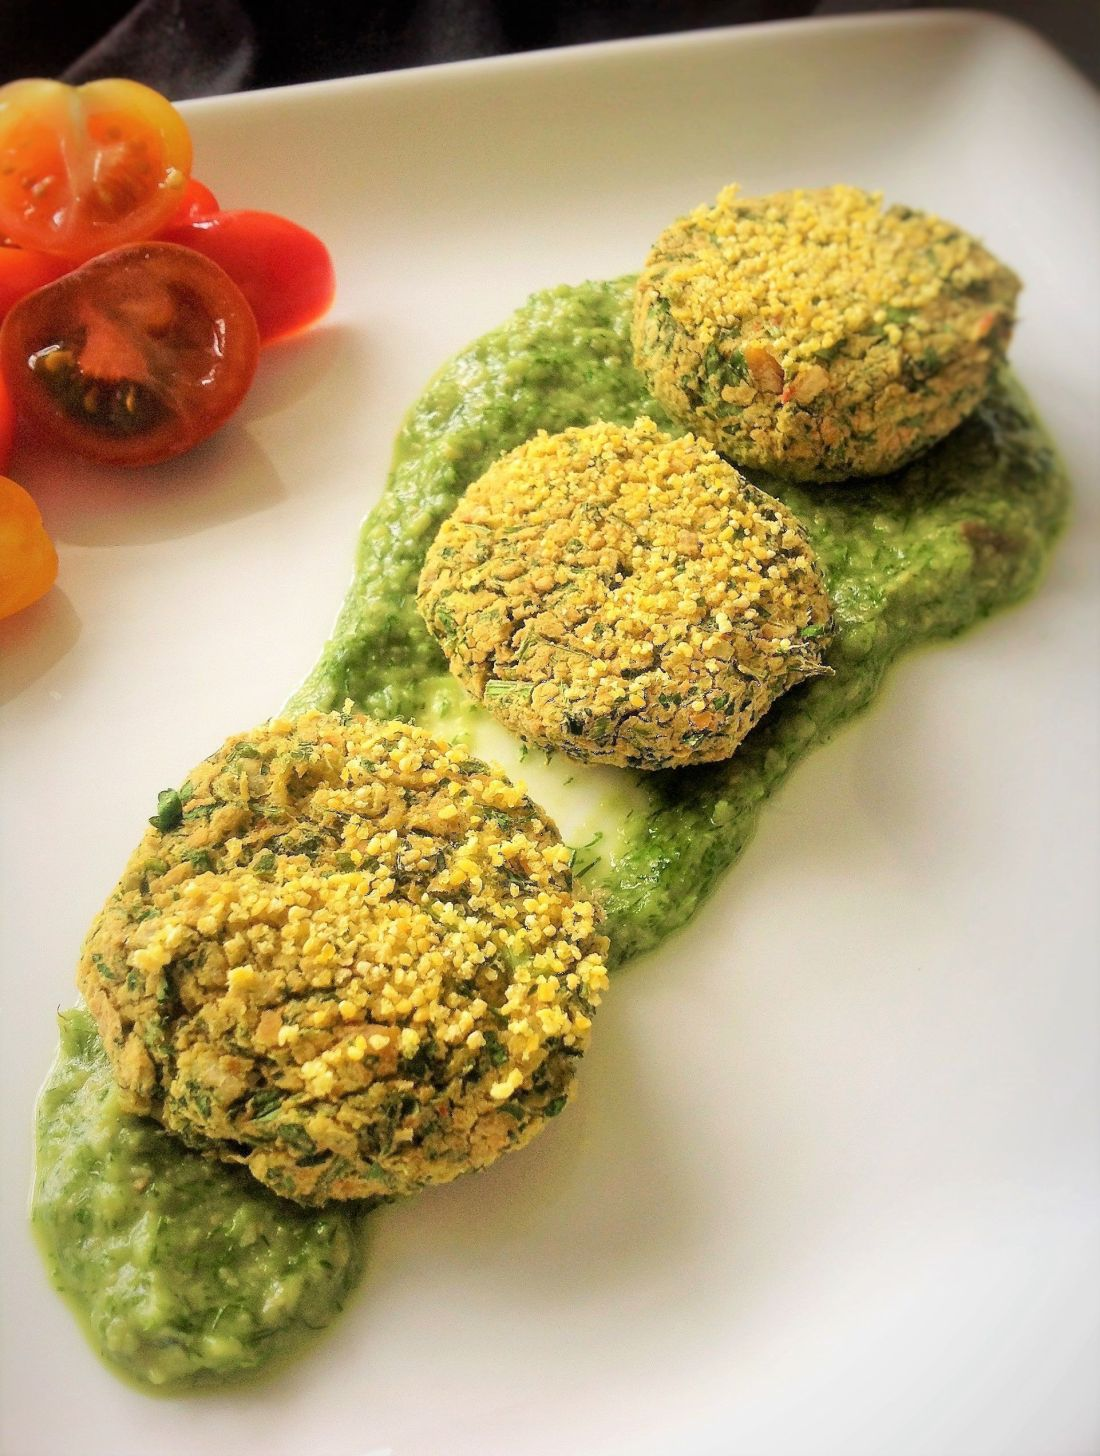 Baked Green Chickpea Falafel Bites - Healthy, Gluten-Free, Oil-Free, Plant-Based, Middle Eastern Vegan Recipe